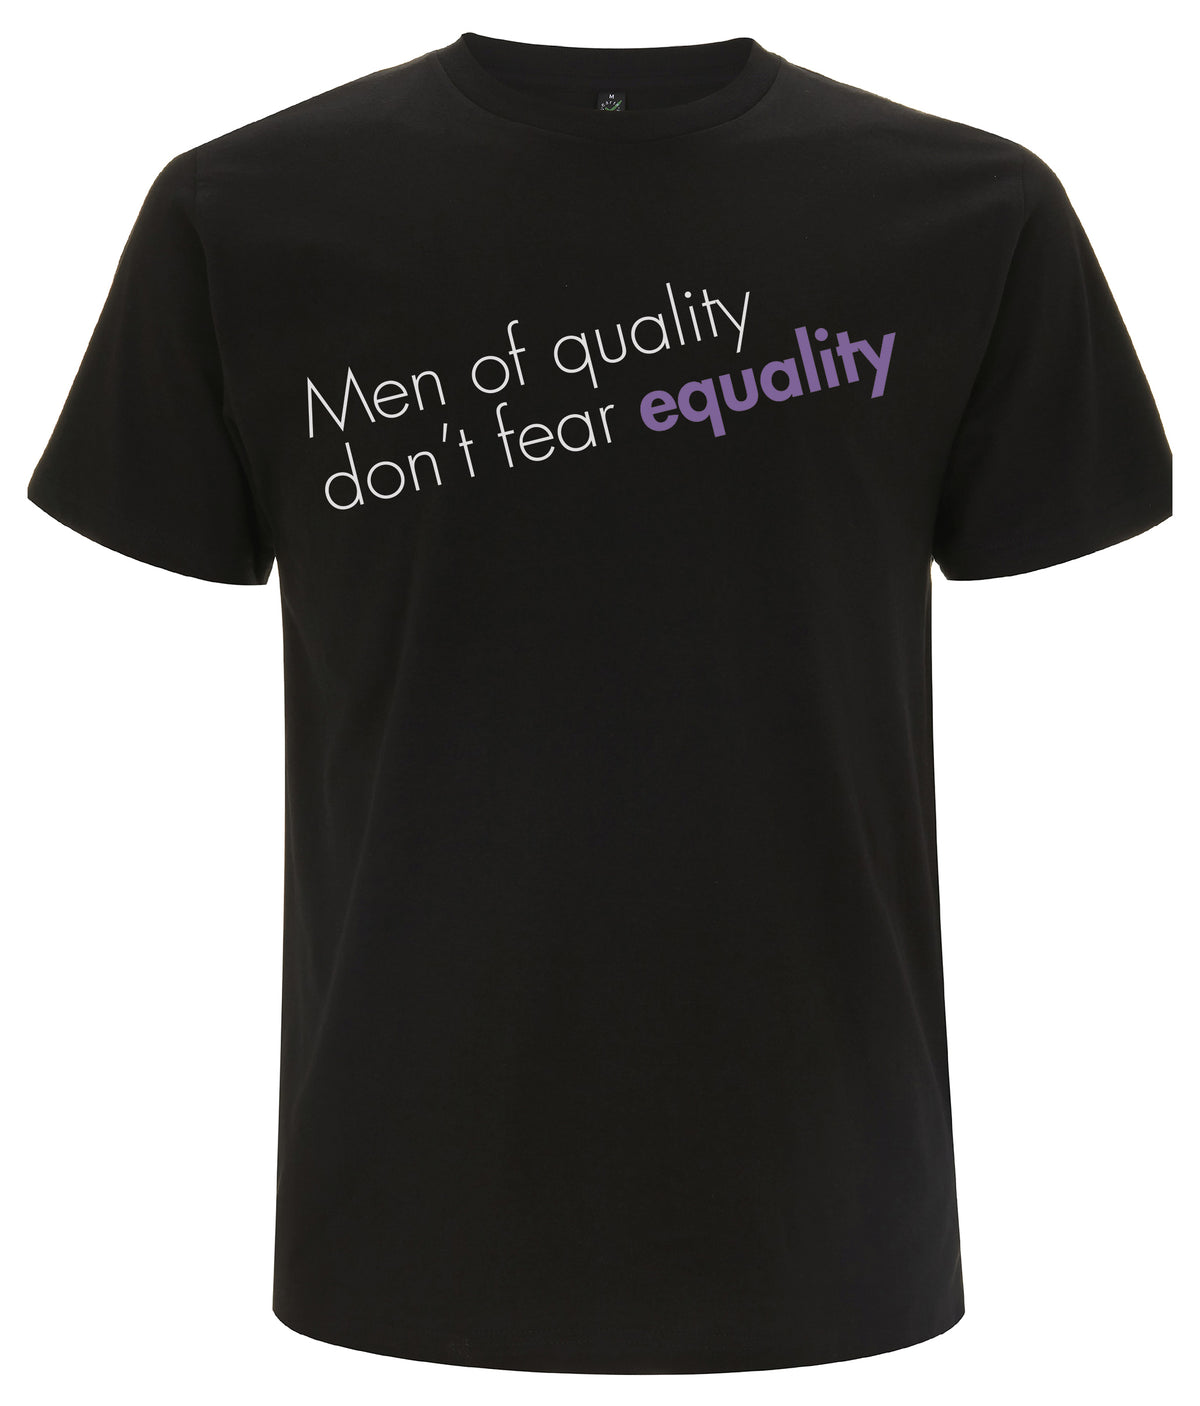 Men Of Quality Don't Fear Equality Organic Feminist T Shirt Black